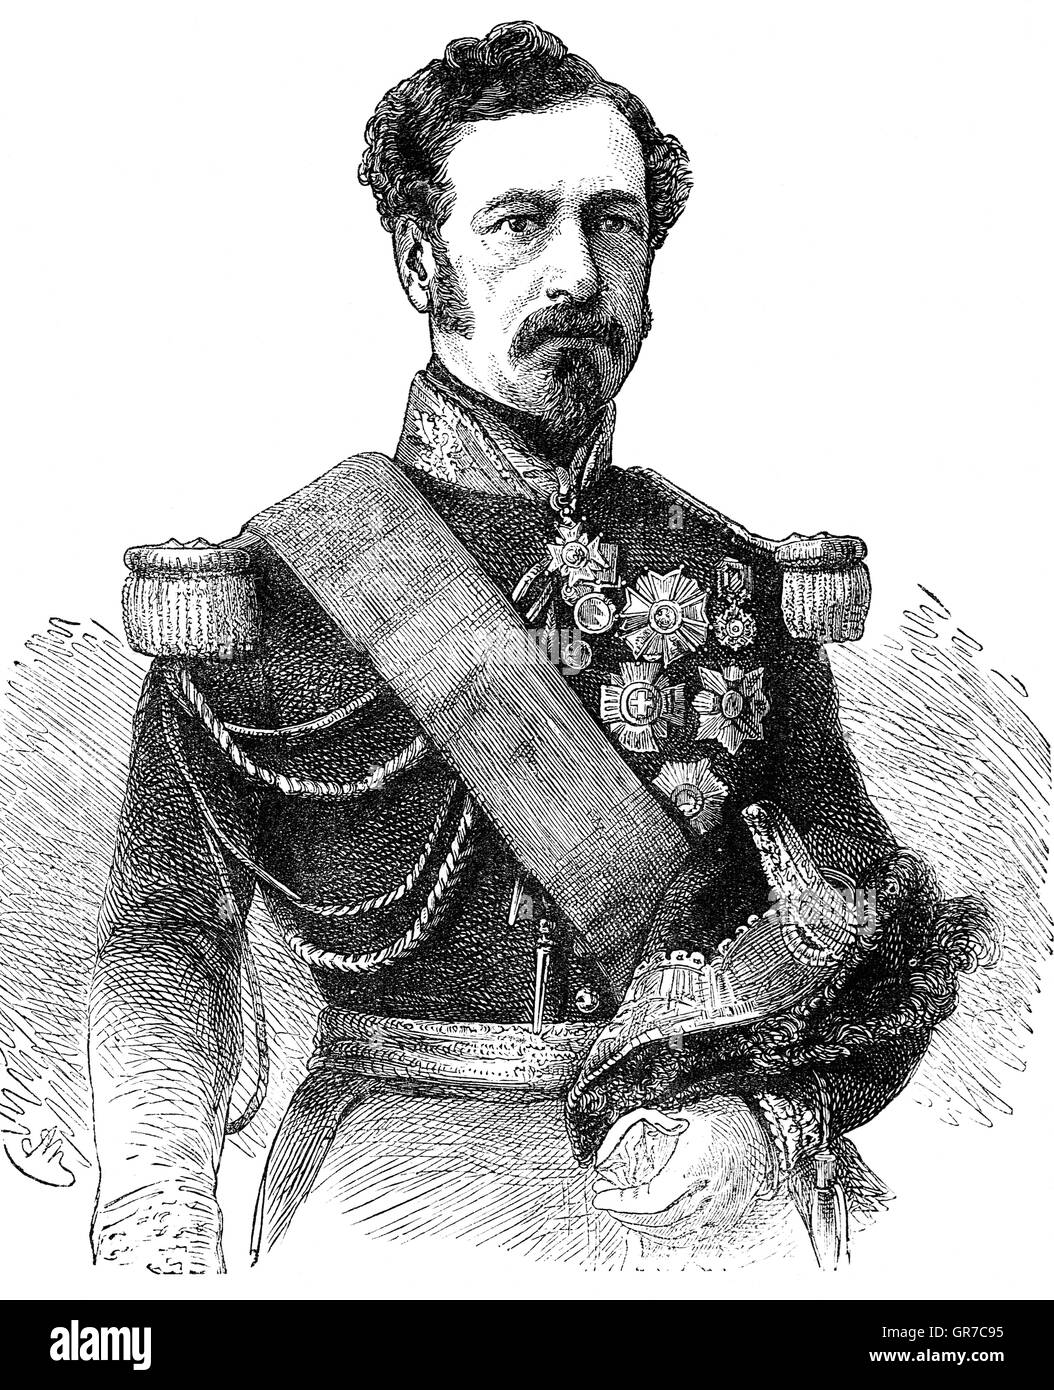 James George Smith Neill (1810 – 857)  was a Scottish military officer of the East India Company, who served during Stock Photo